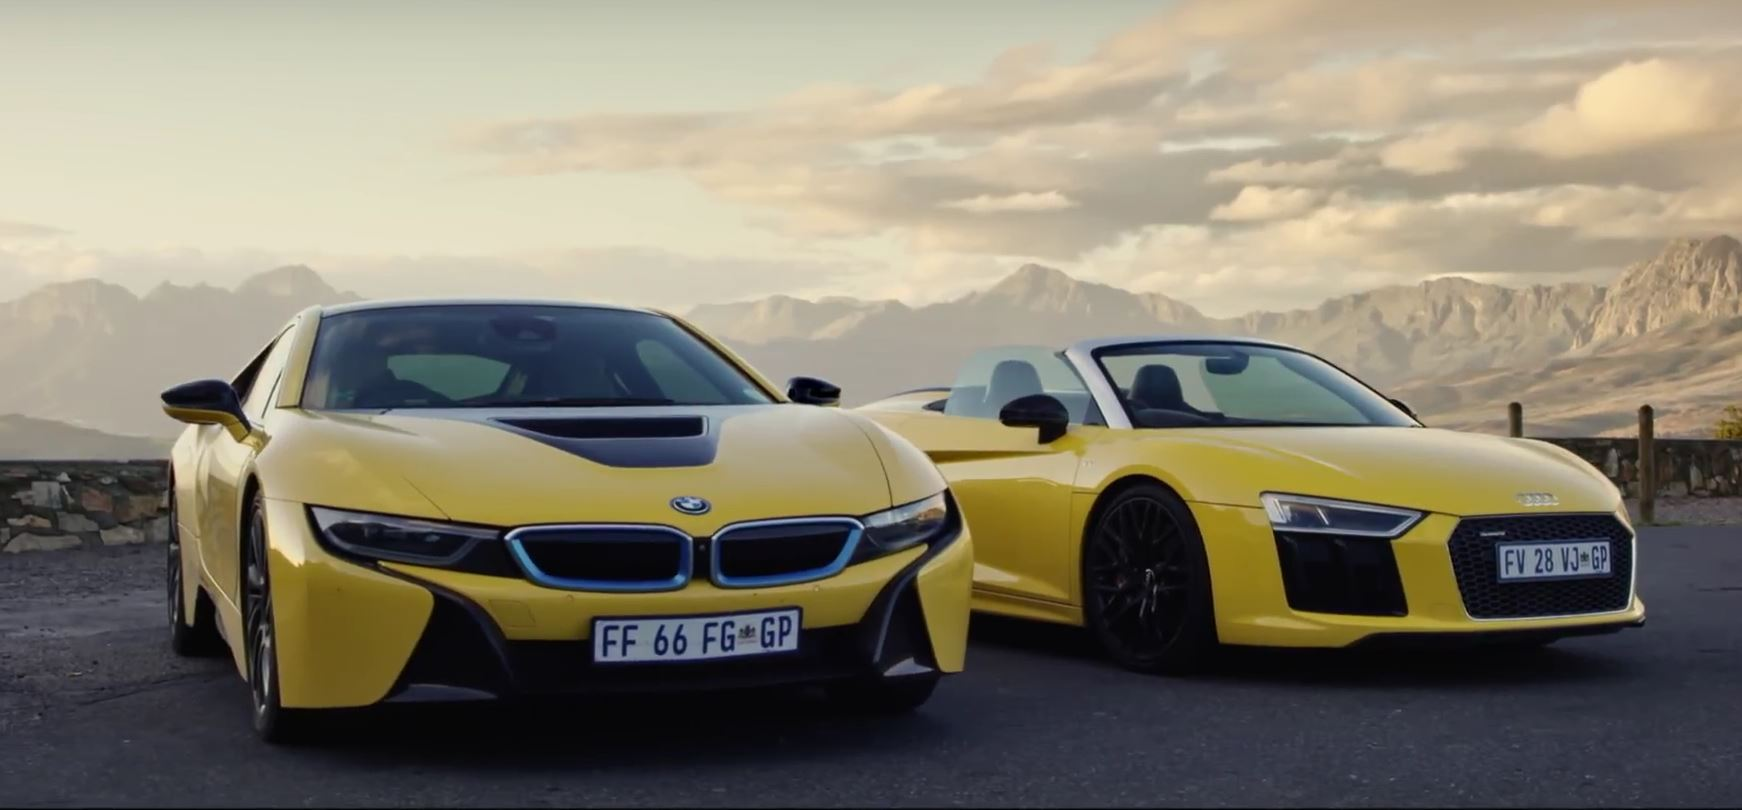 BMW I Vs Audi R Spyder Two Different Supercars That Get Under - Bmw vs audi